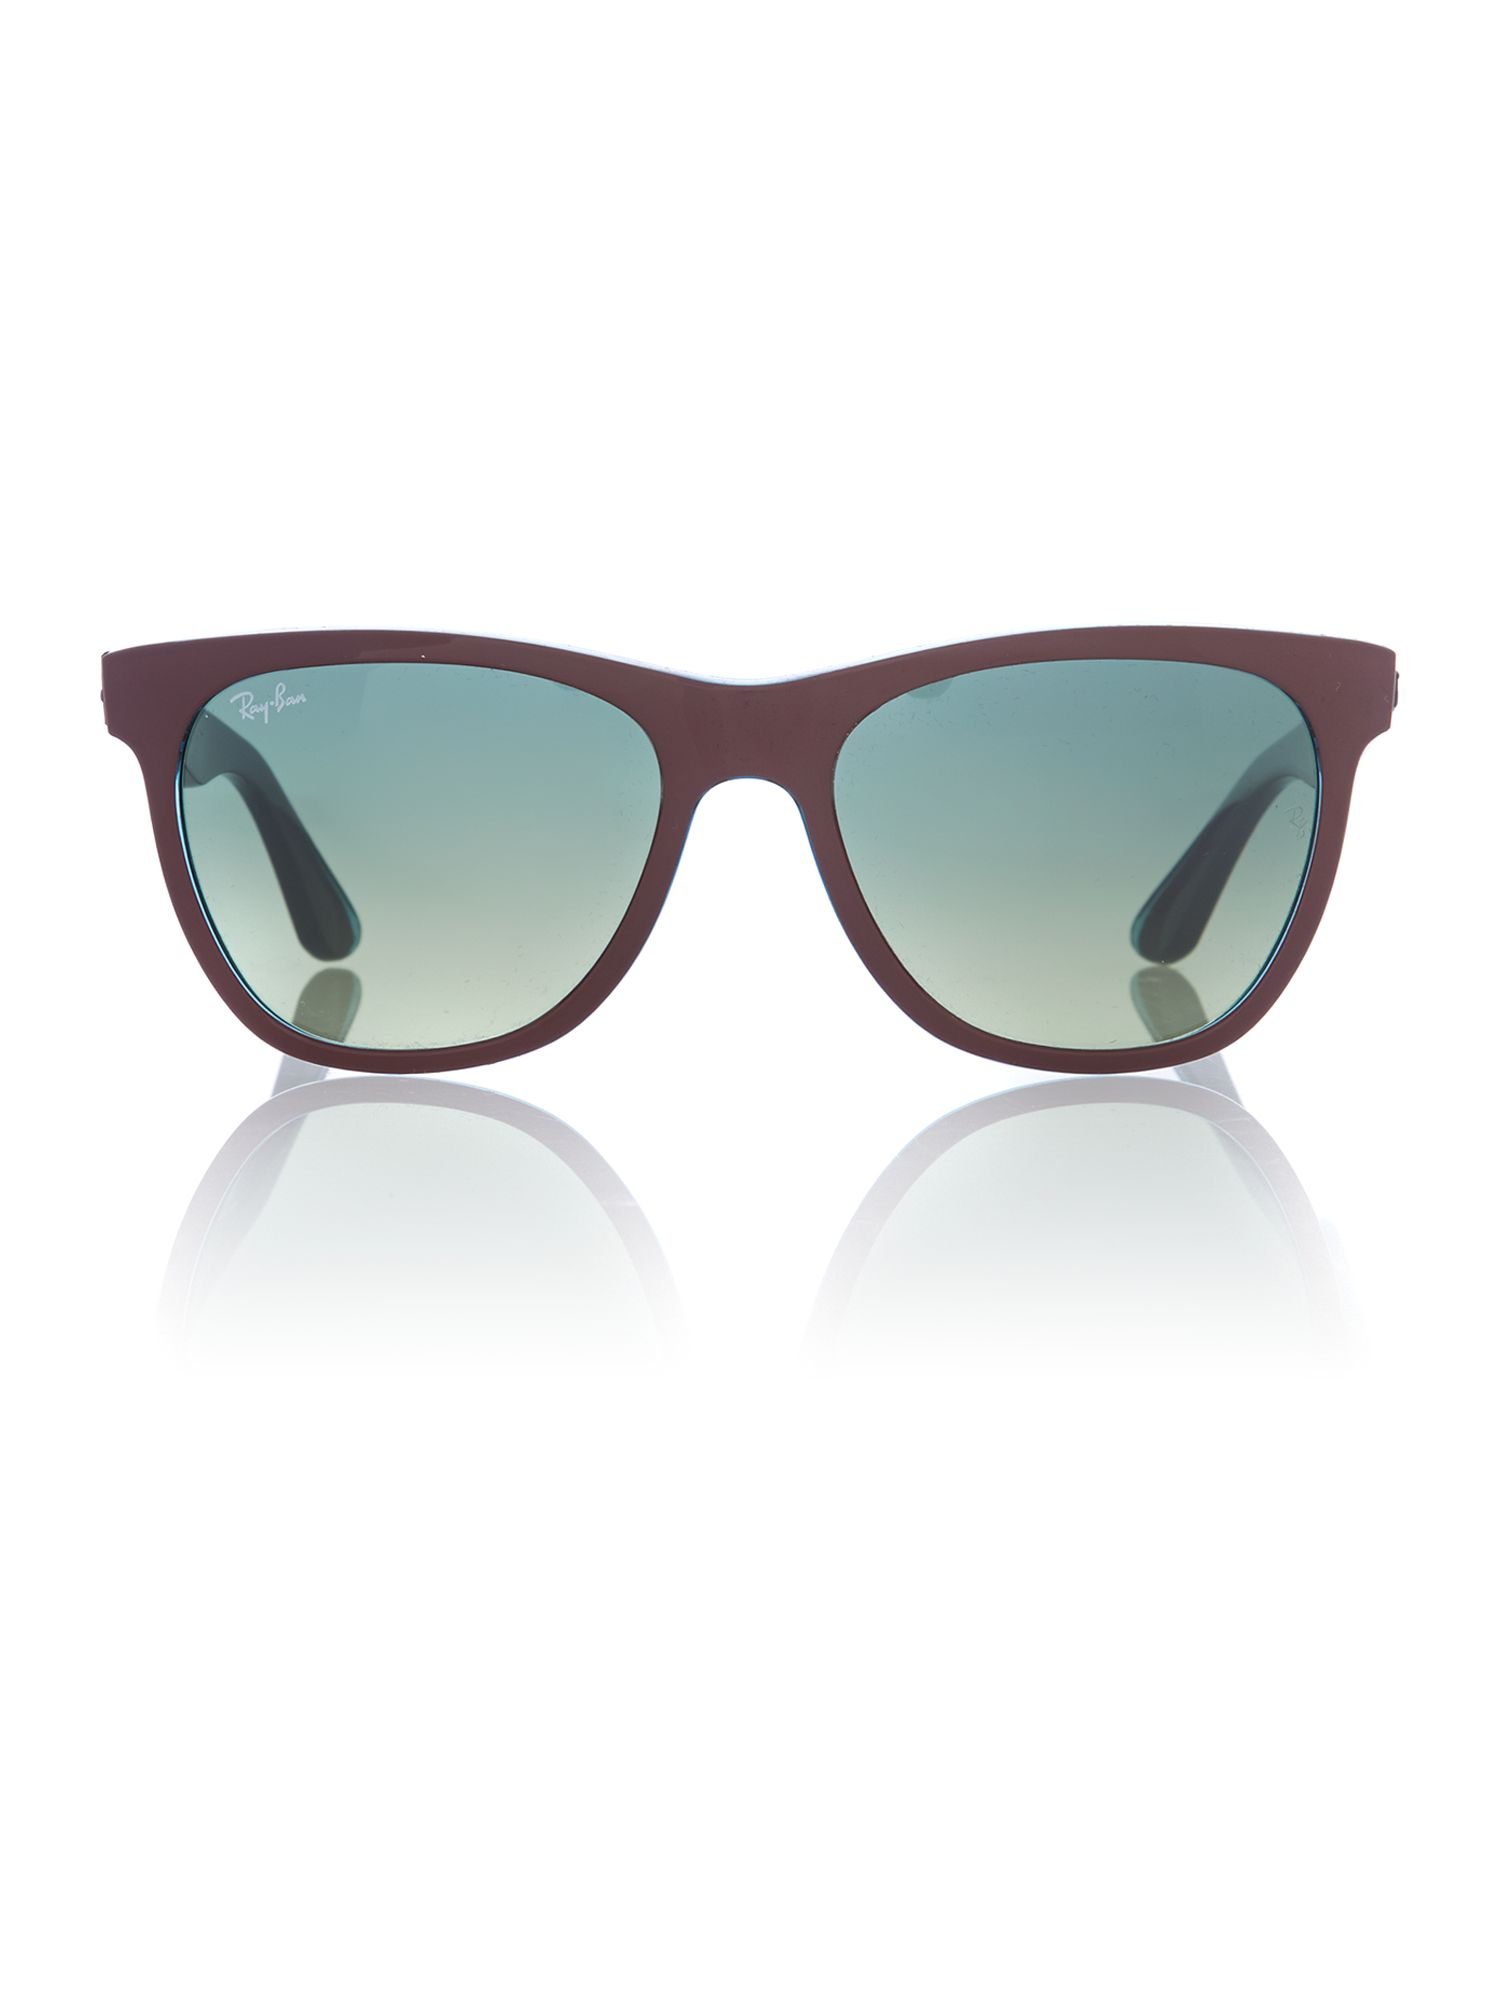 Men green gradient green squared sunglasses